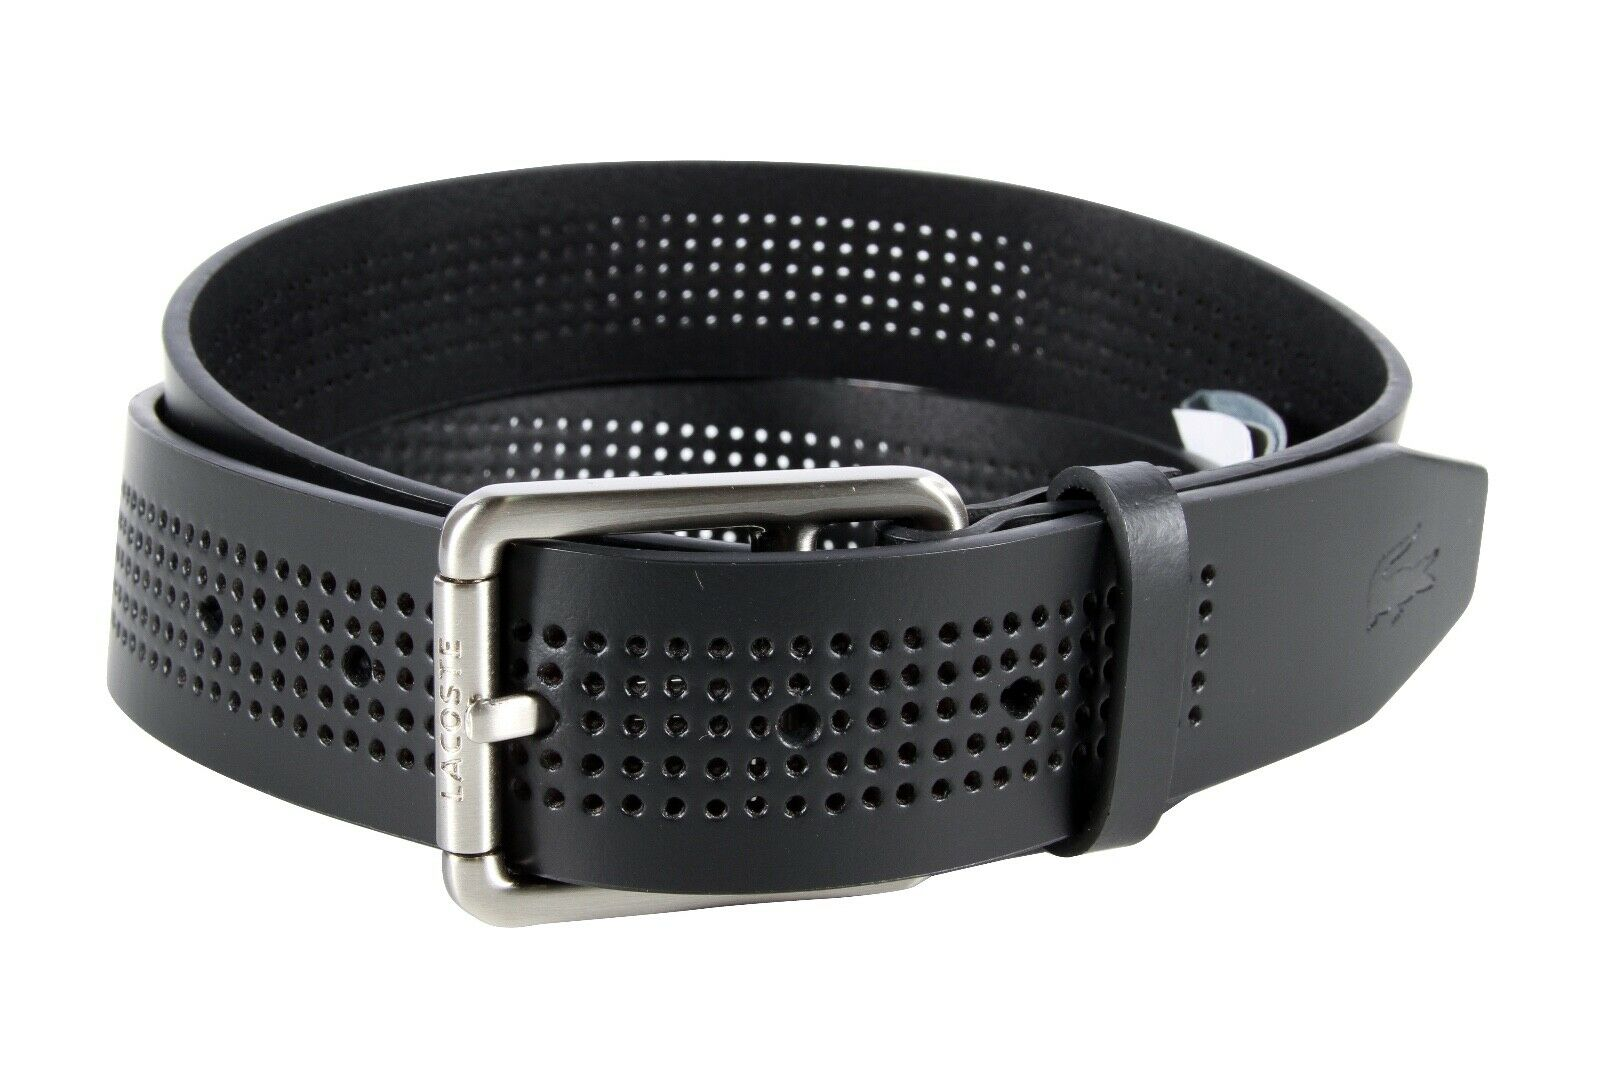 Lacoste Men's Perforated White Leather Belt With Roller Buckle RC3013 H01